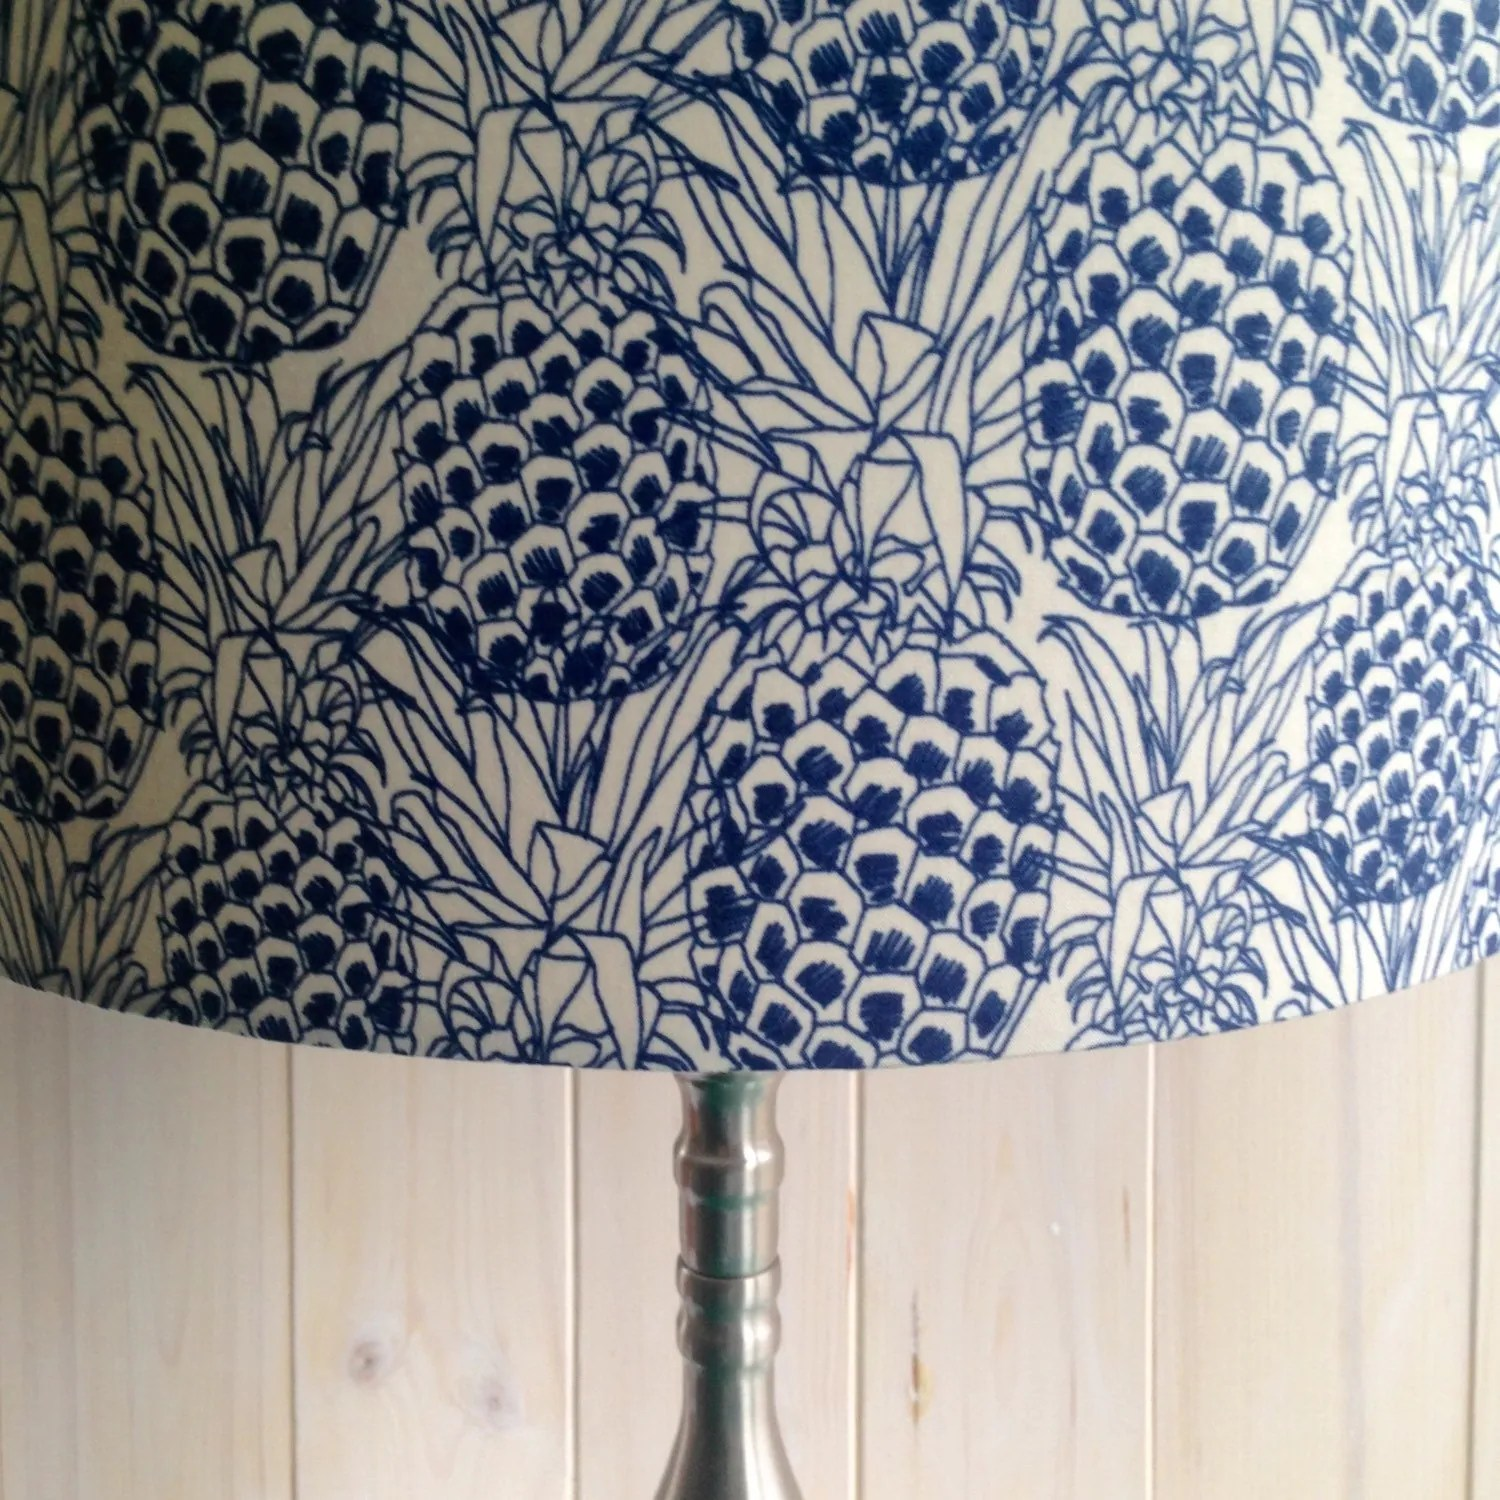 Japanische Lampenschirme 15cm Hand Made Lamp Shade Covered With Japanese Fabric